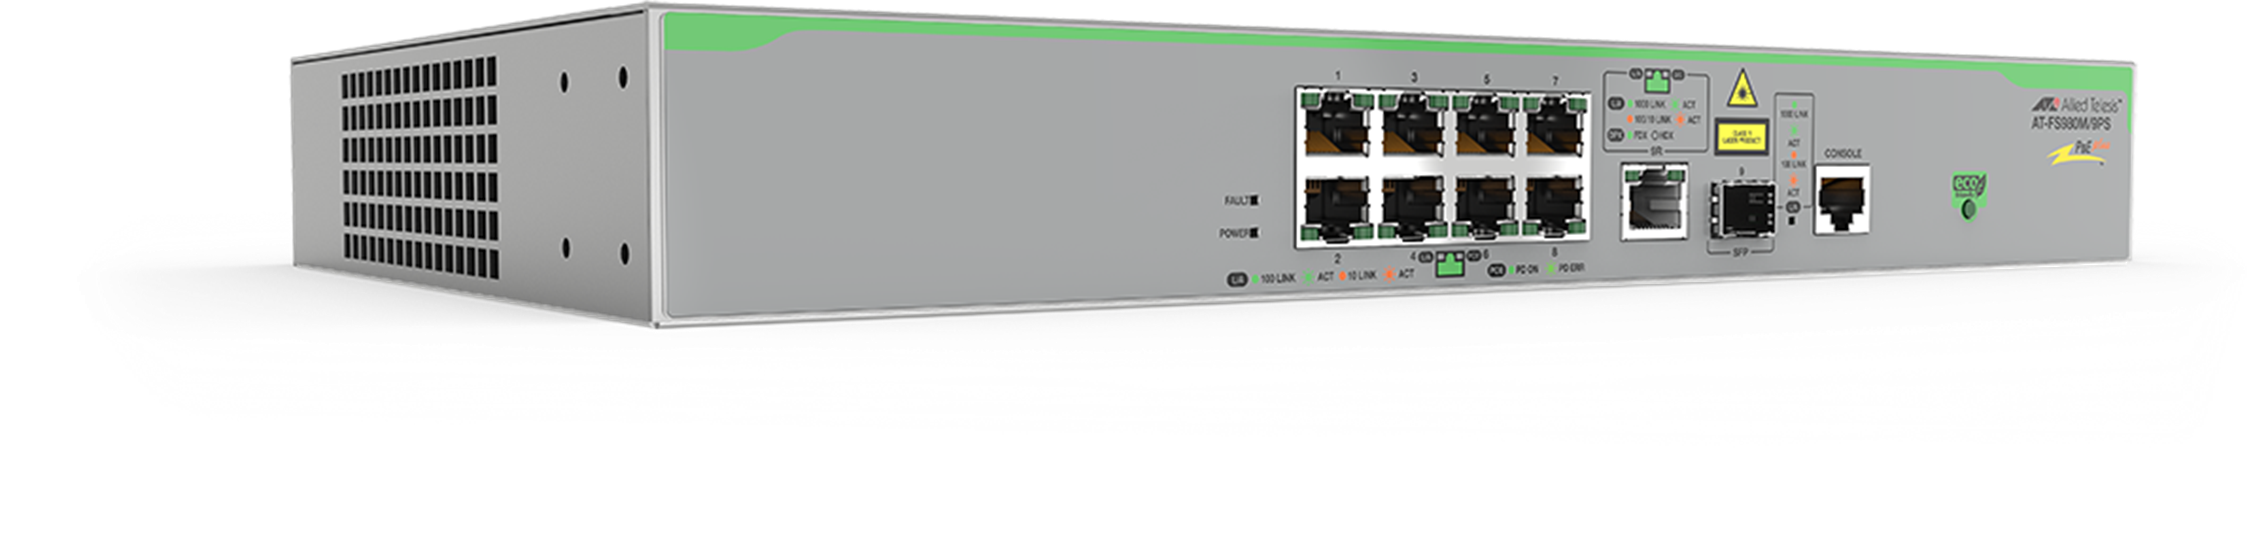 AT-FS980M Series - Layer 2 Fast Ethernet Switch